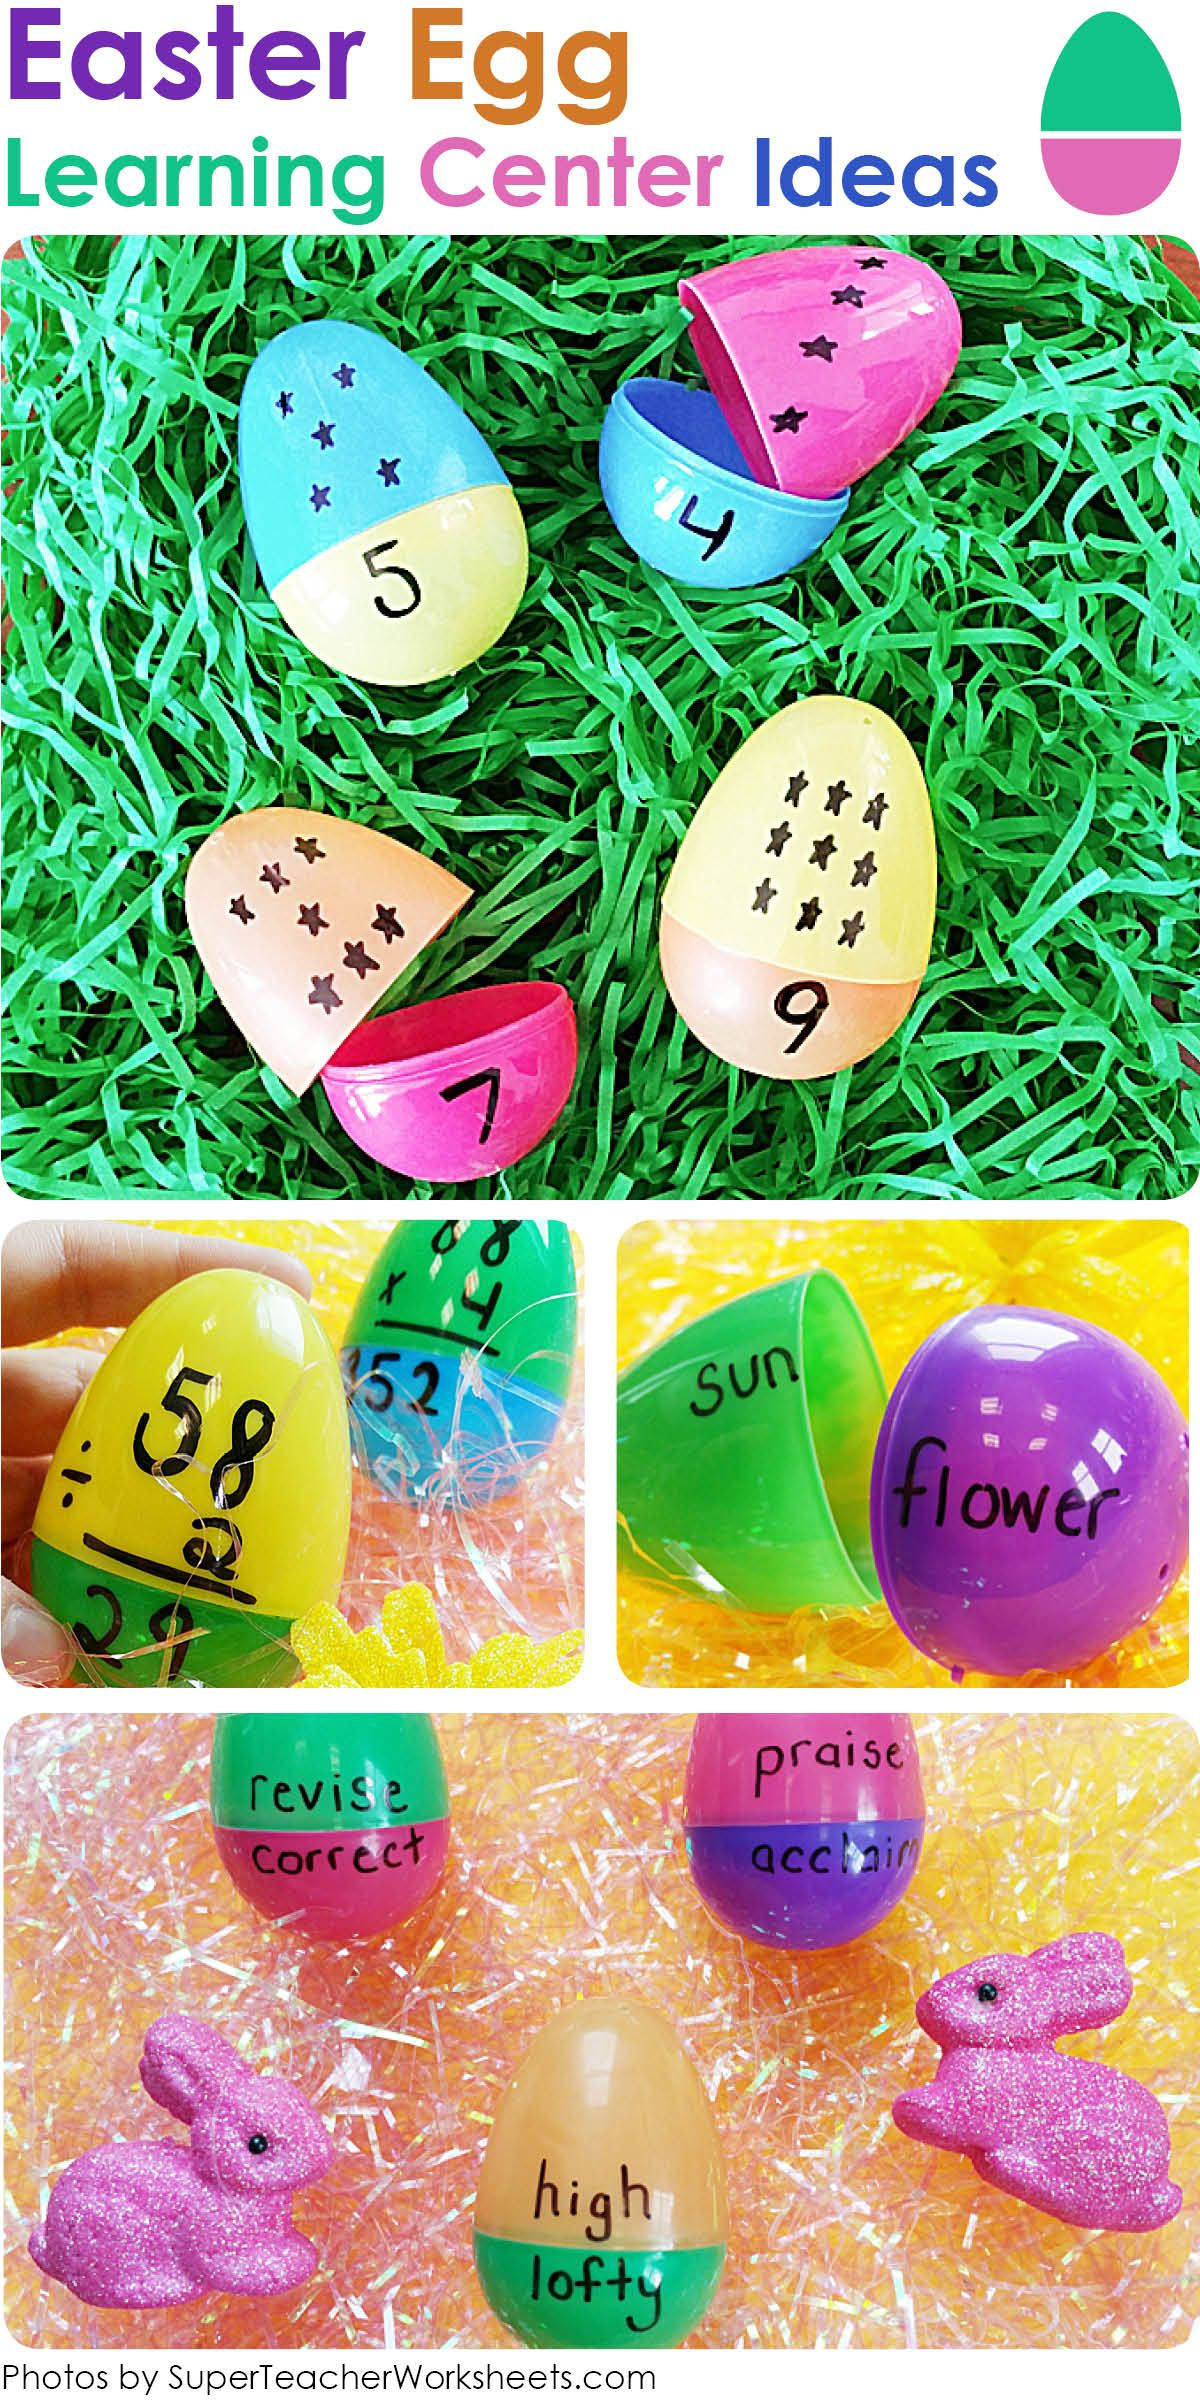 Here Are Some Fun Ways To Use Plastic Easter Eggs In Your